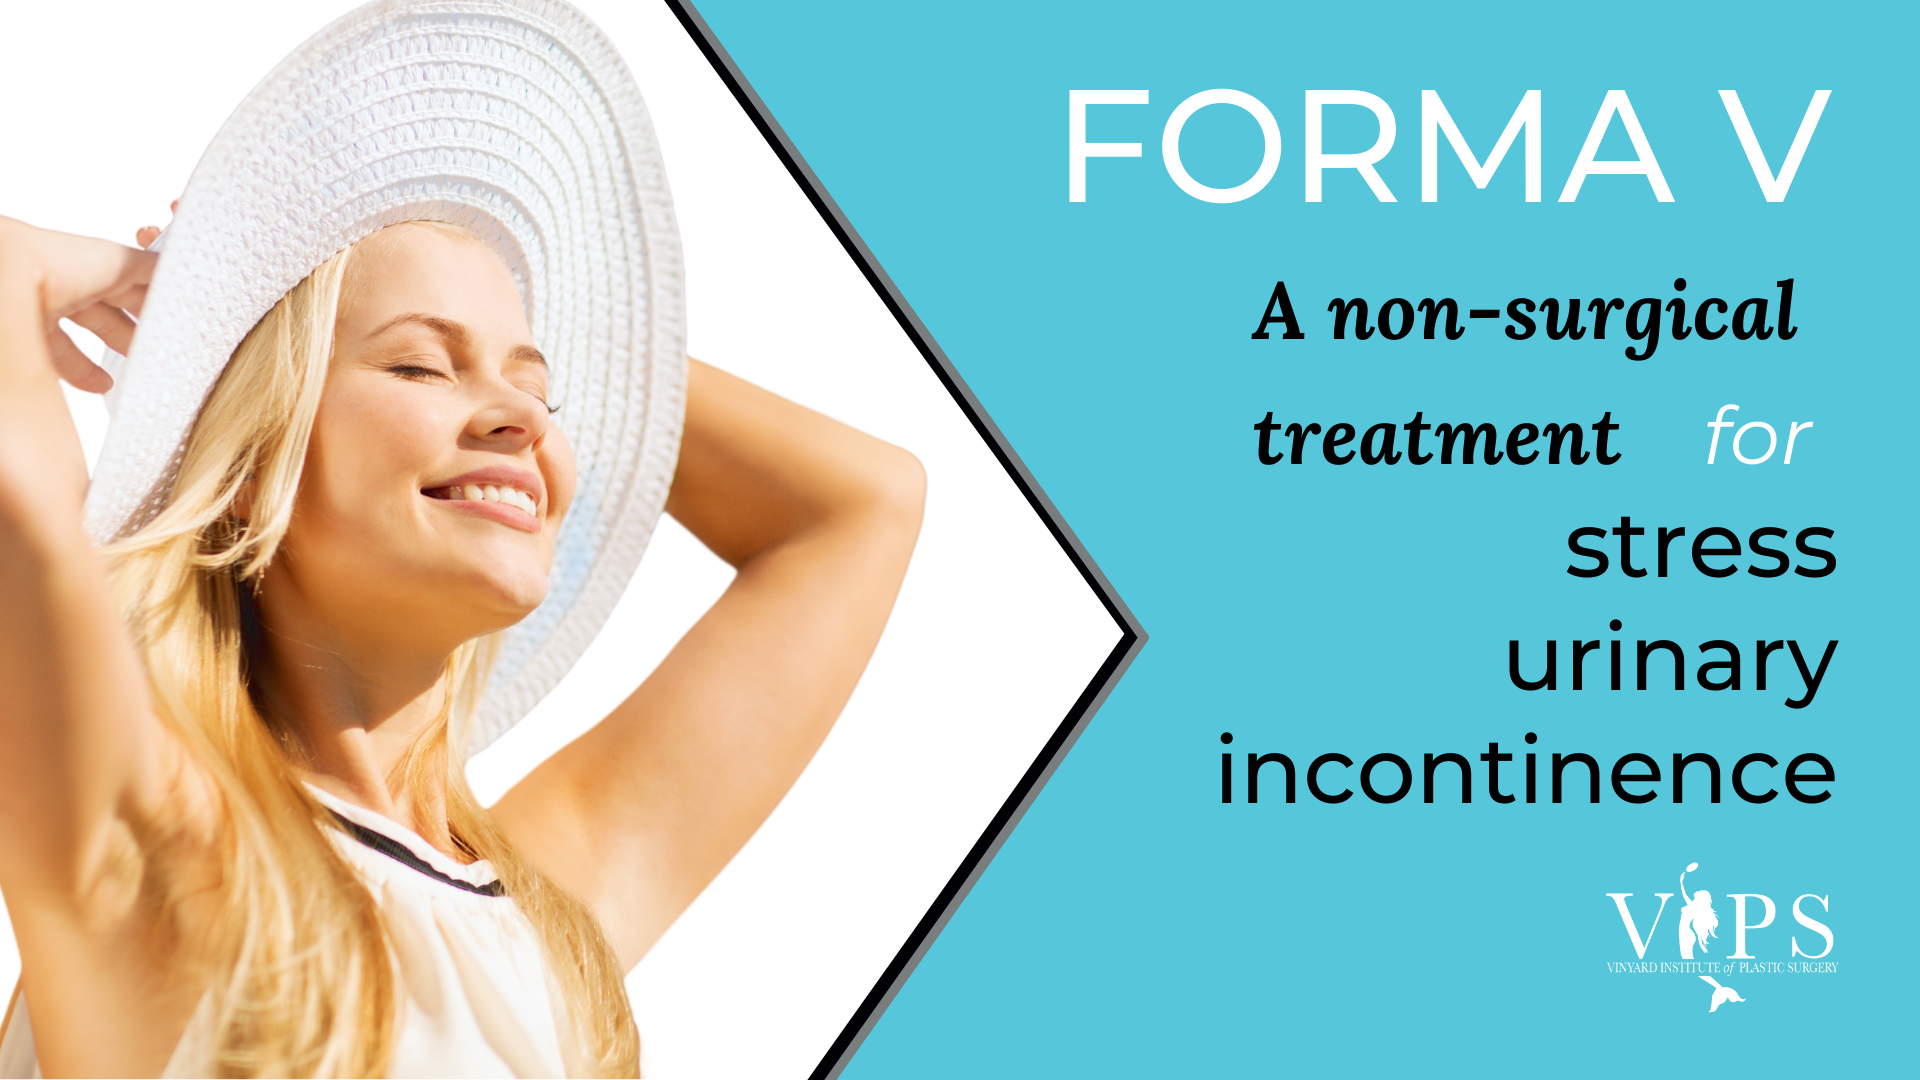 FORMA V: A Non-Surgical Treatment for Stress Urinary Incontinence